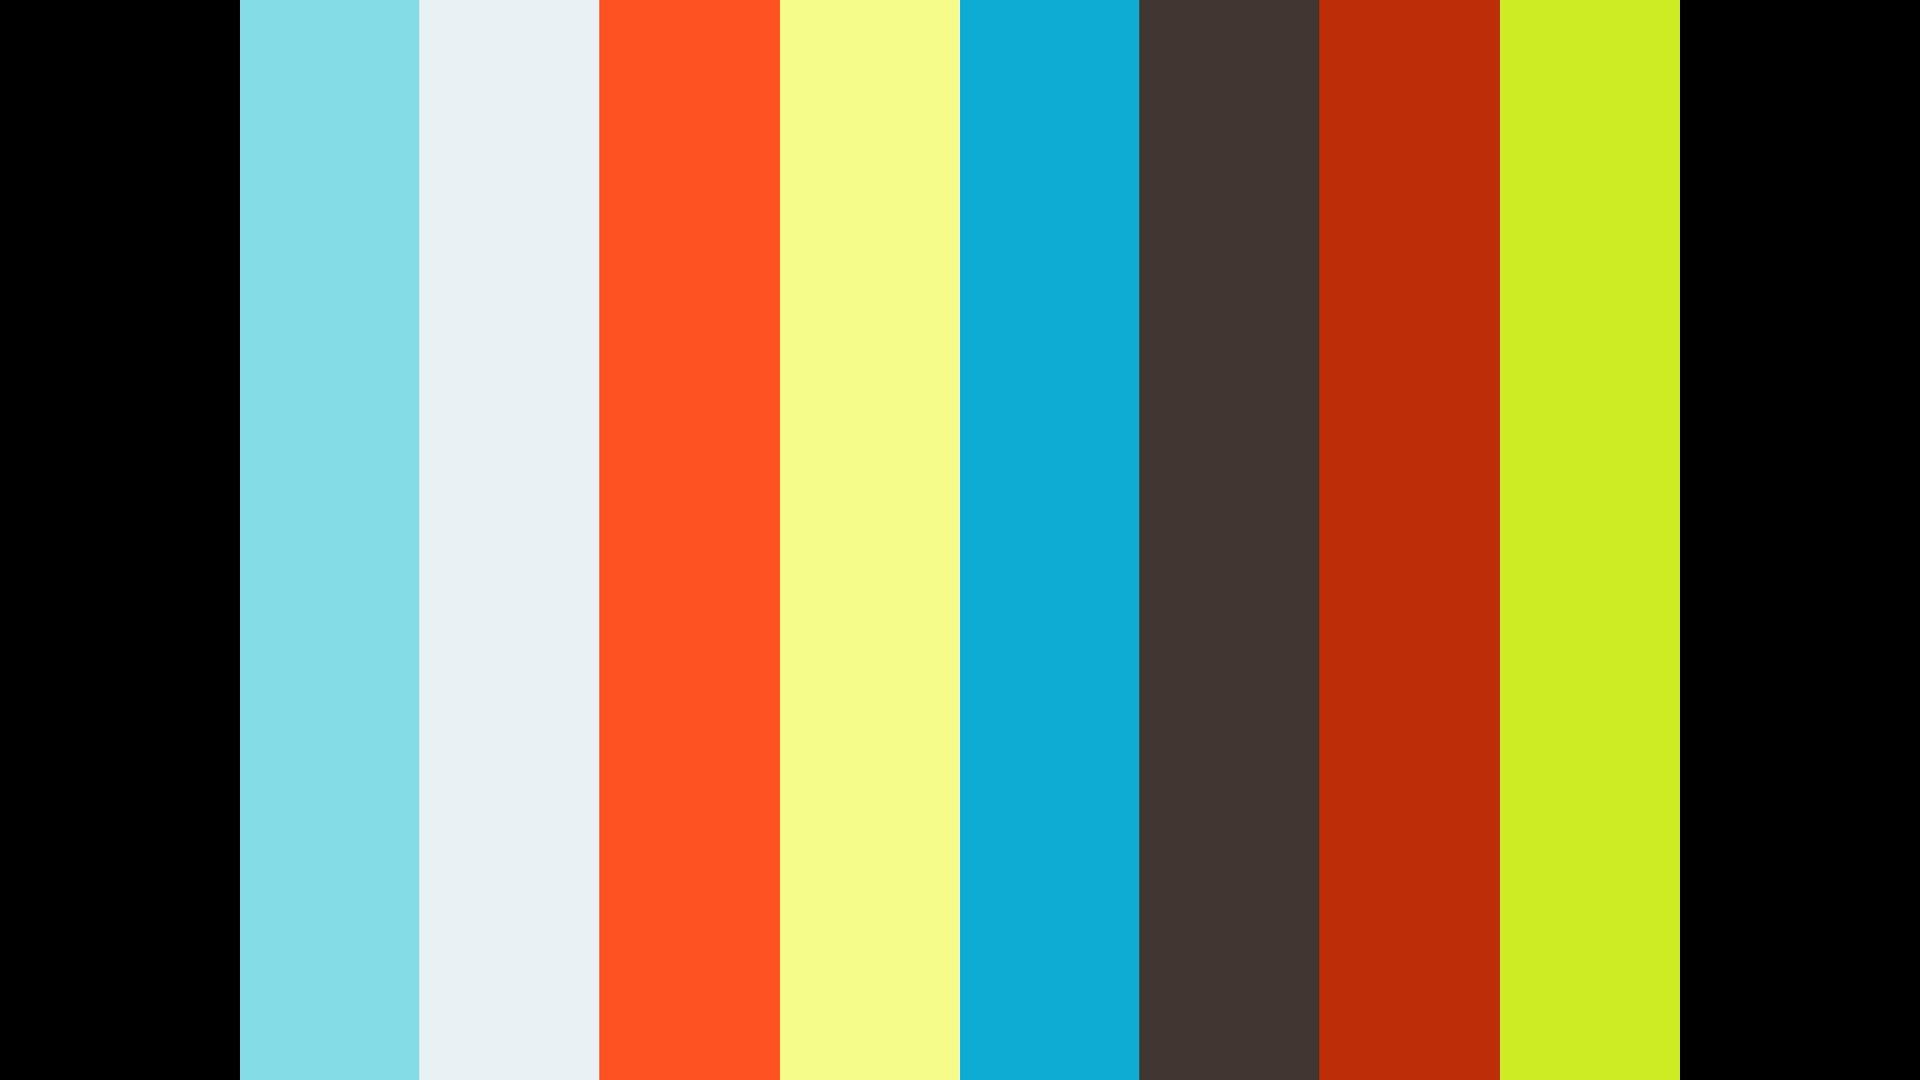 Castillo de Almodovar del Rio en 4k - Castles 4k of Spain - Castle GAME OF THRONES Scenary